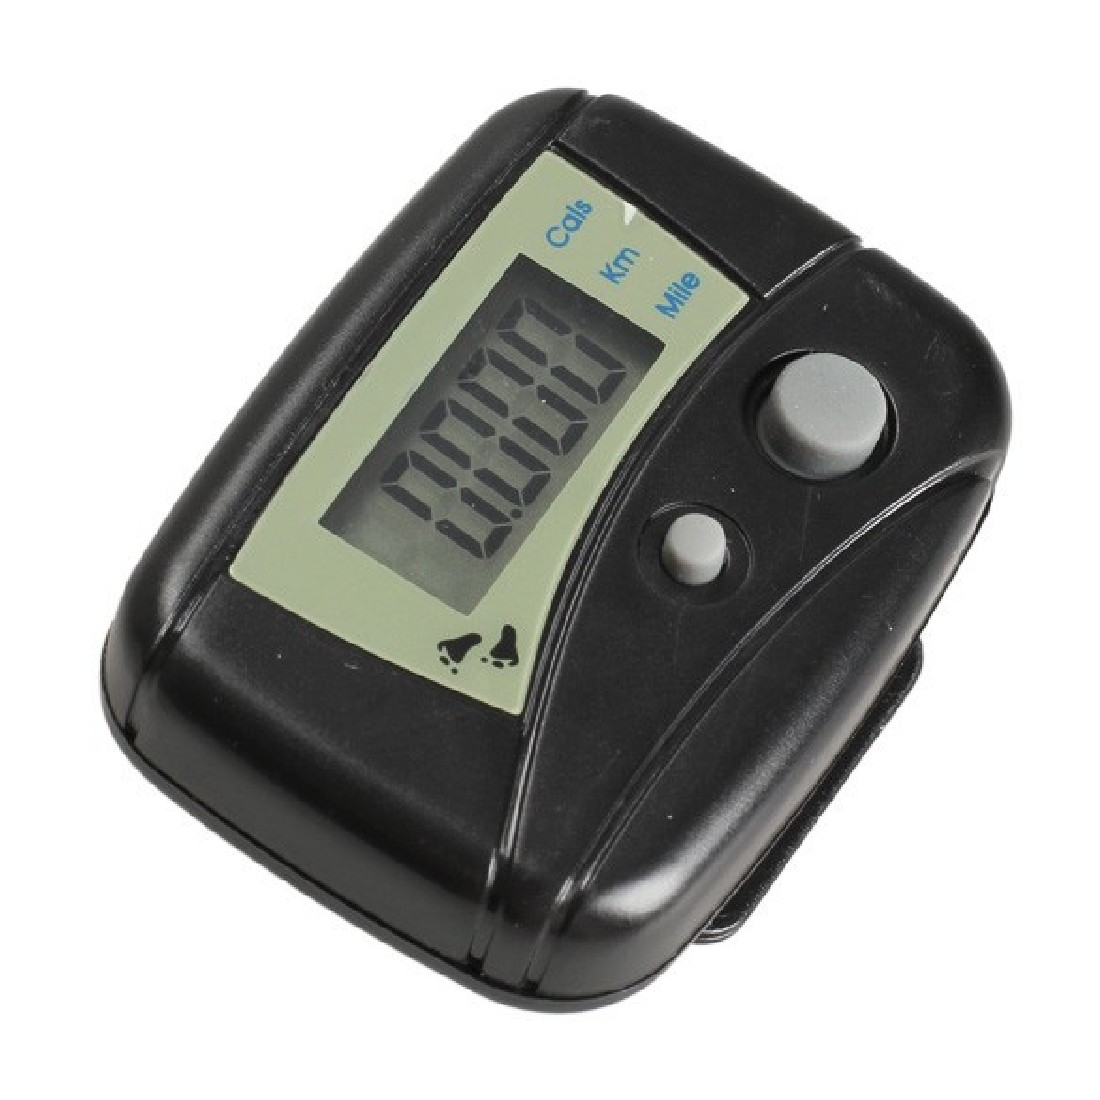 Best Price Electronic Steps Black Digital LCD Run Step Run Pedometer Walking Calorie Counter Distance Clip-on step counter